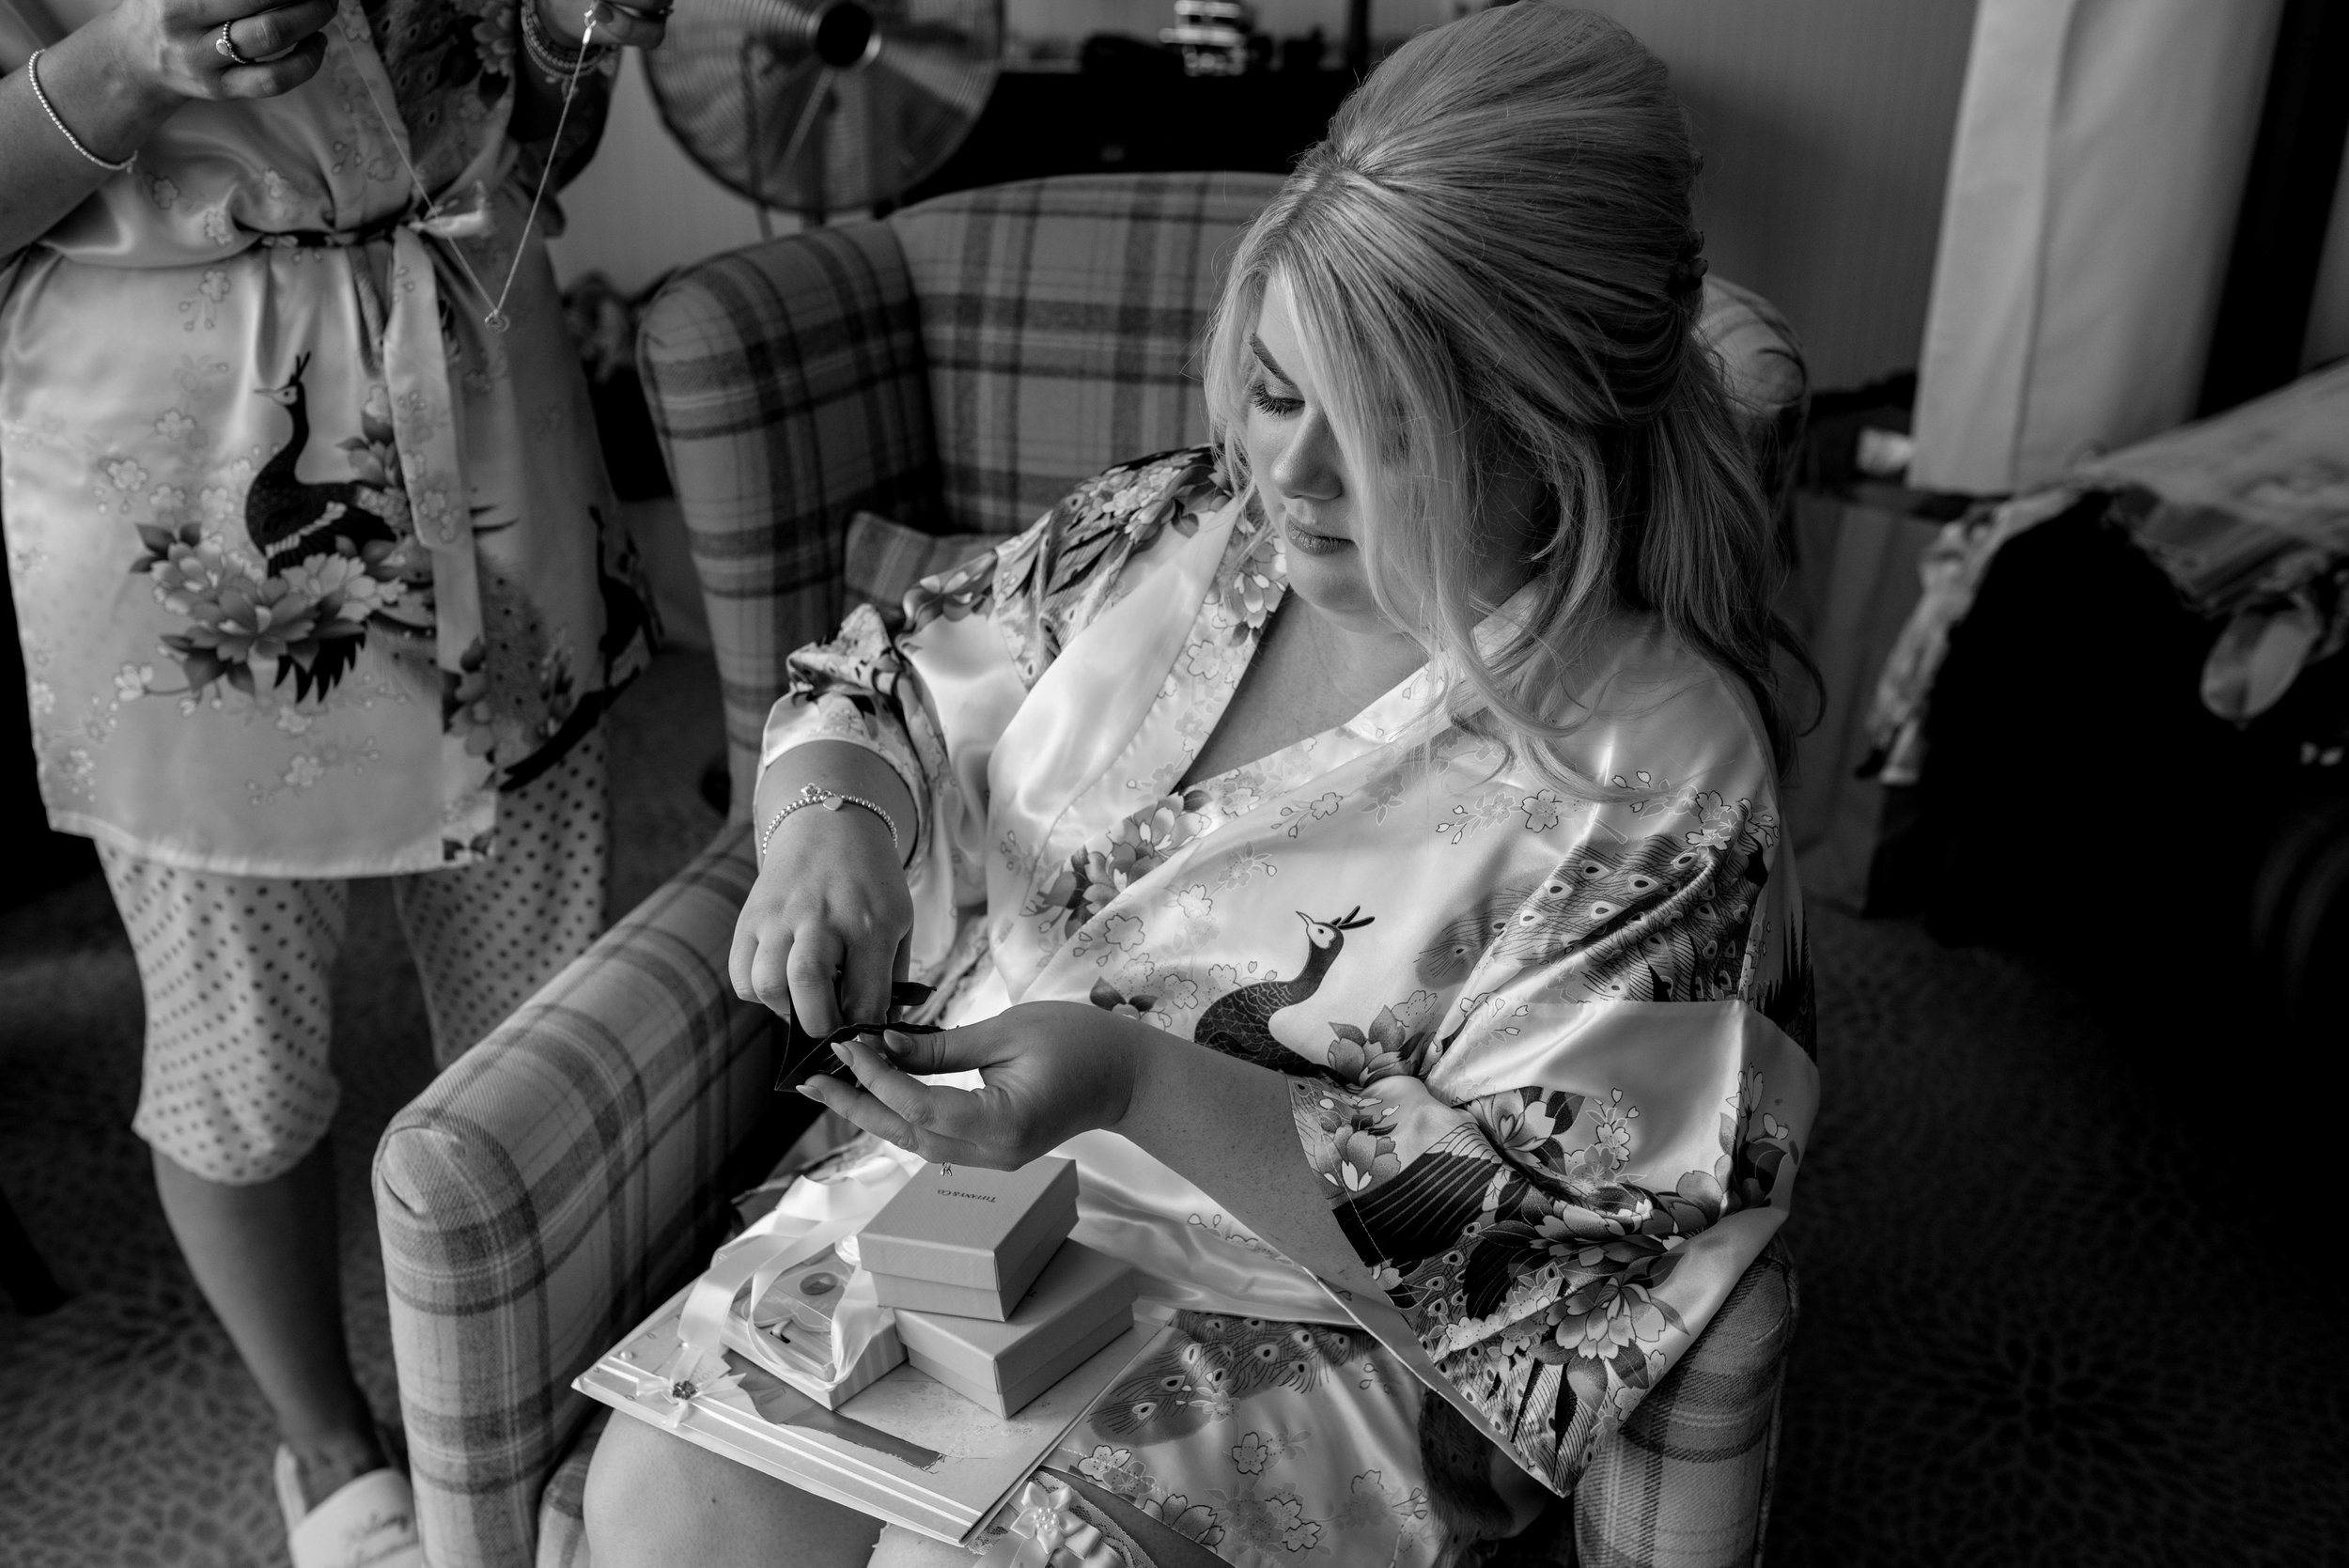 The bride sits and opens her presents off her new groom